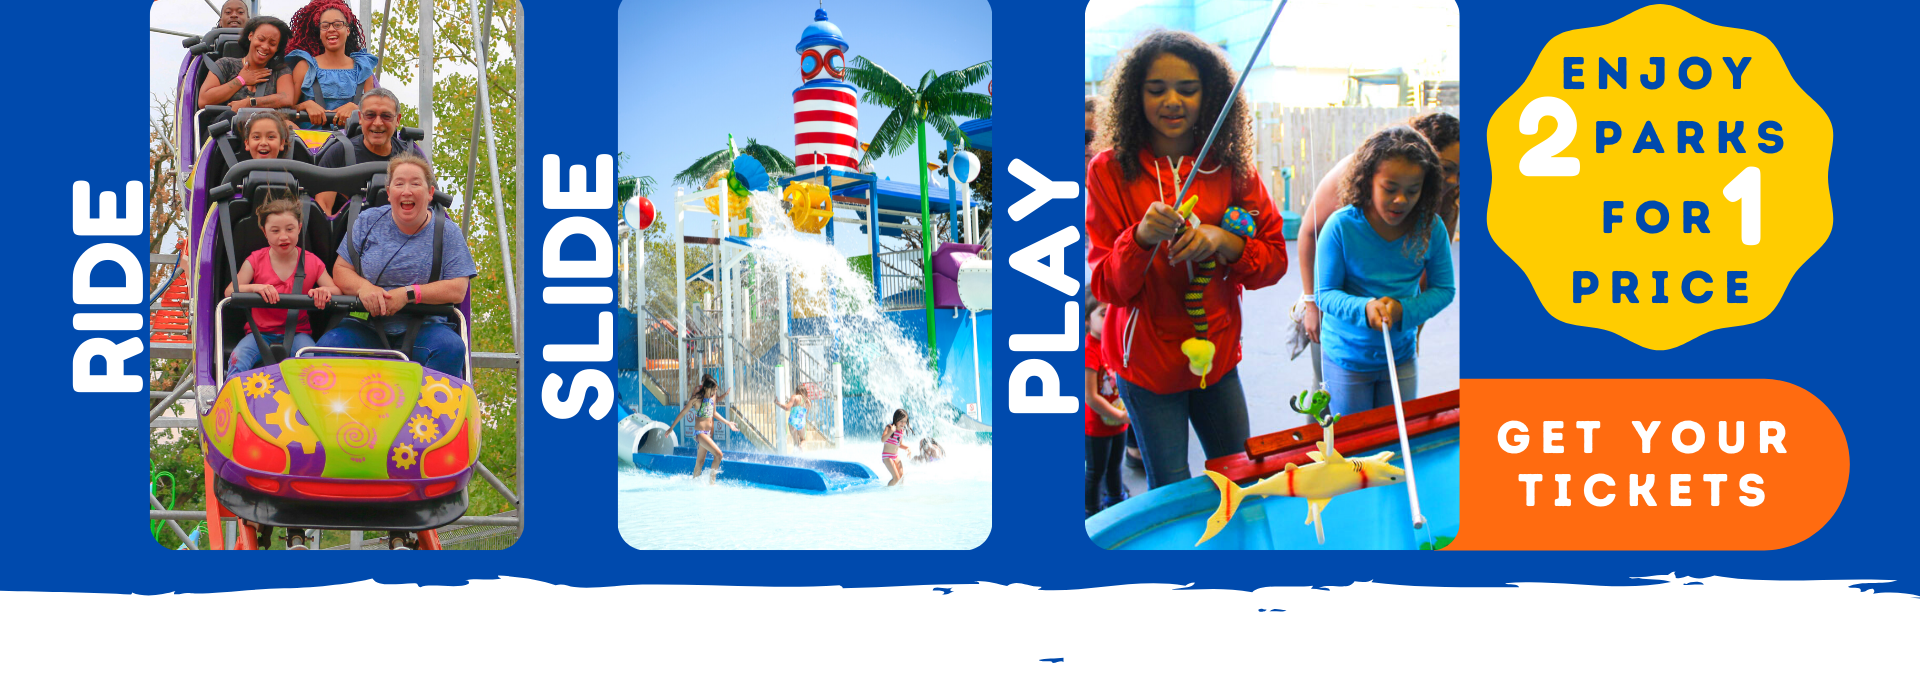 Banner saying Ride Slide Play - 2 Parks For 1 Price